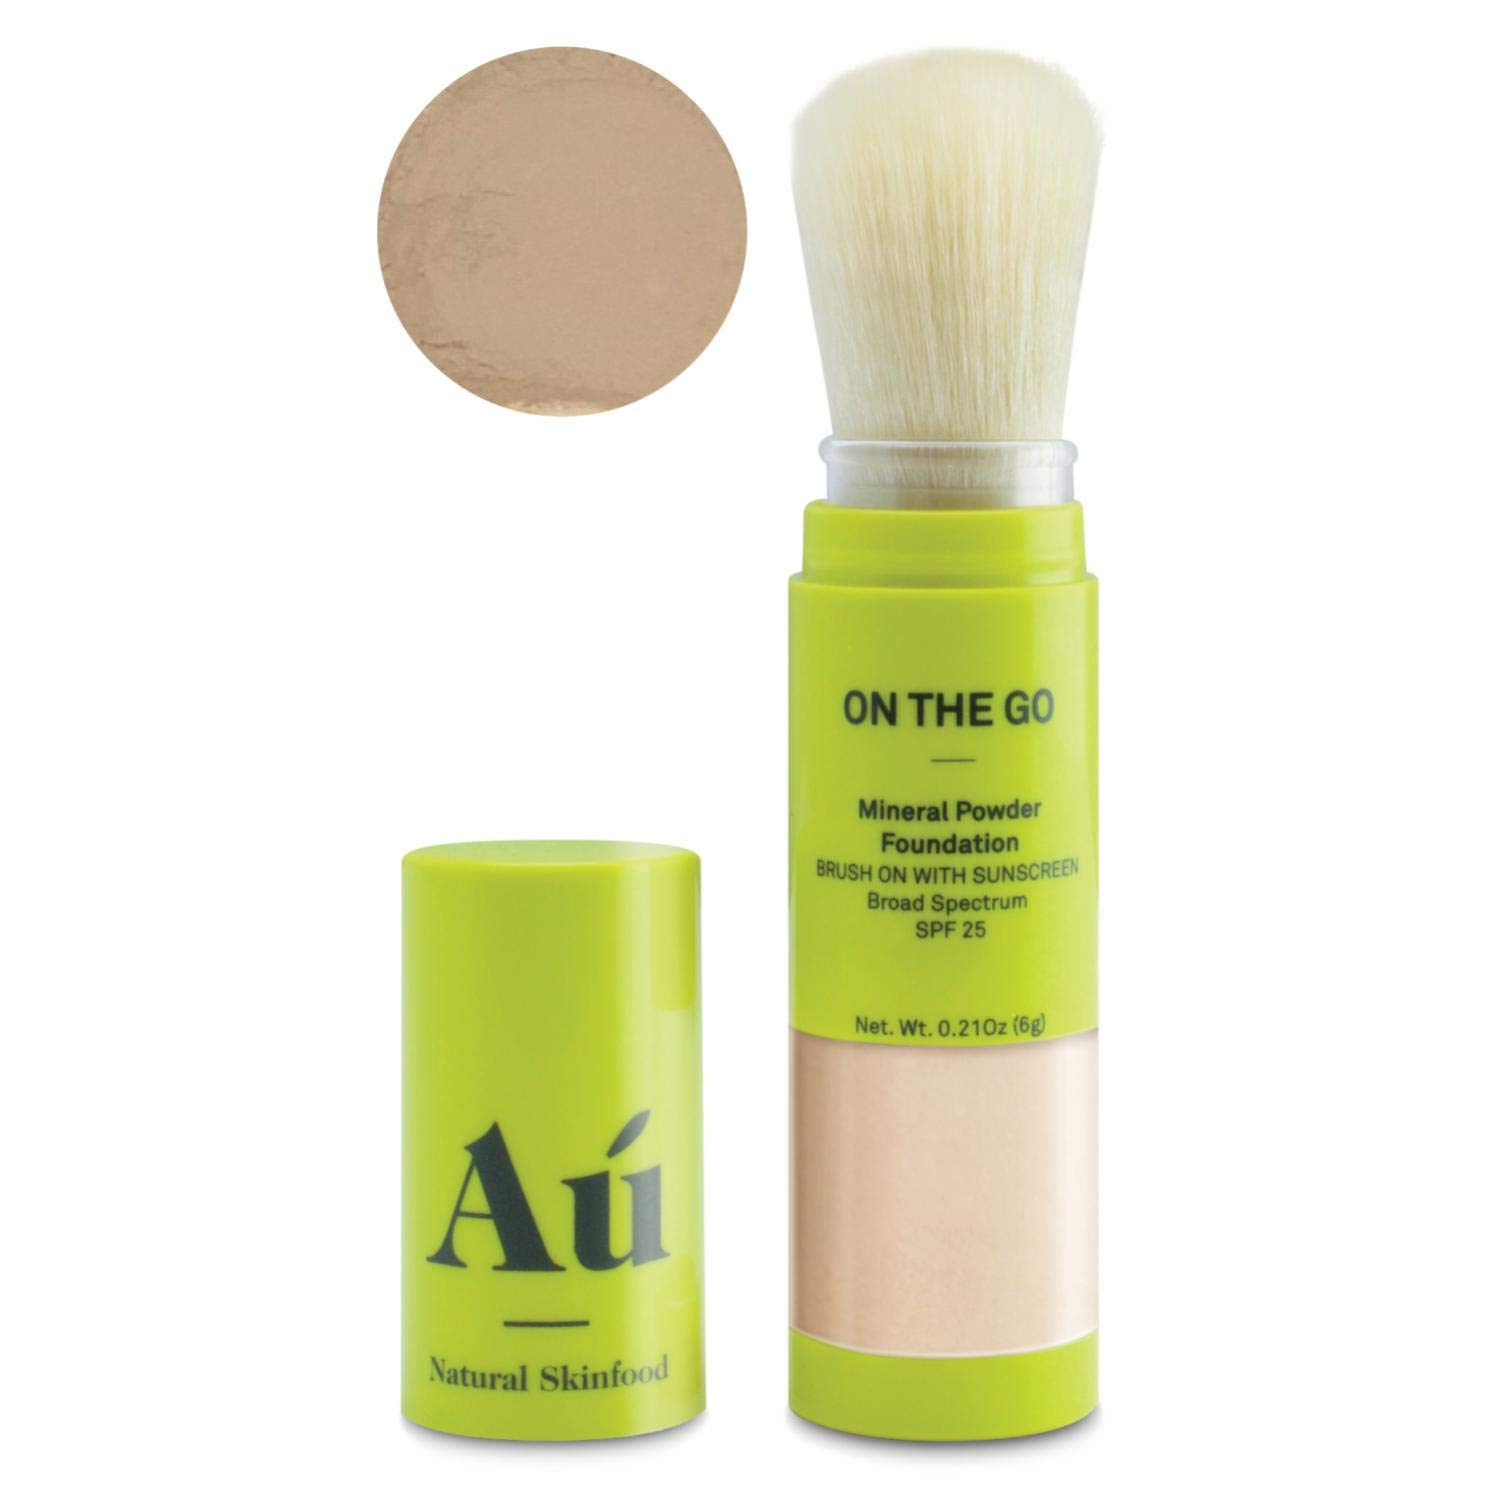 On the Go Mineral Powder Brush-On Sunscreen (Medium) by Au Natural Skinfood | Broad Spectrum SPF 25 UVA/UVB Protection | Oil-free; Reef Safe; Translucent Tinted Sun Safety for Men, Women, and Children